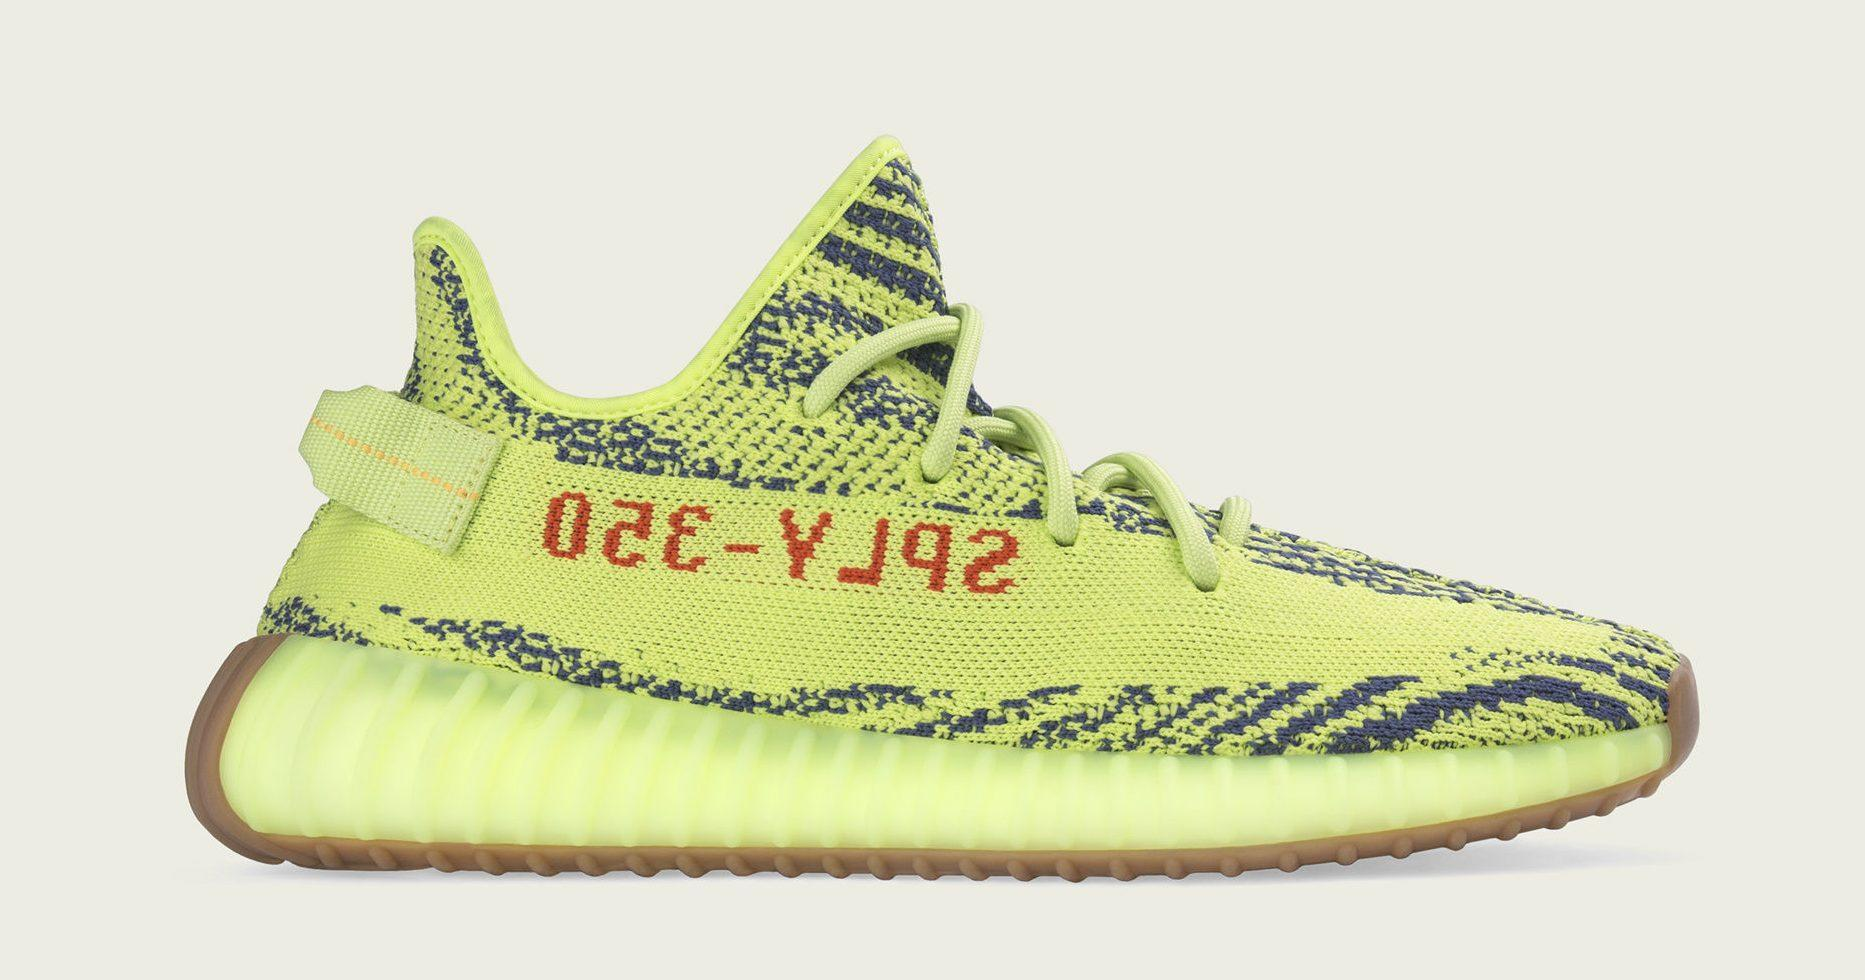 80ca9f01086 One of the Most In-Demand Adidas Yeezy Boost 350 V2s Is Returning Next Week